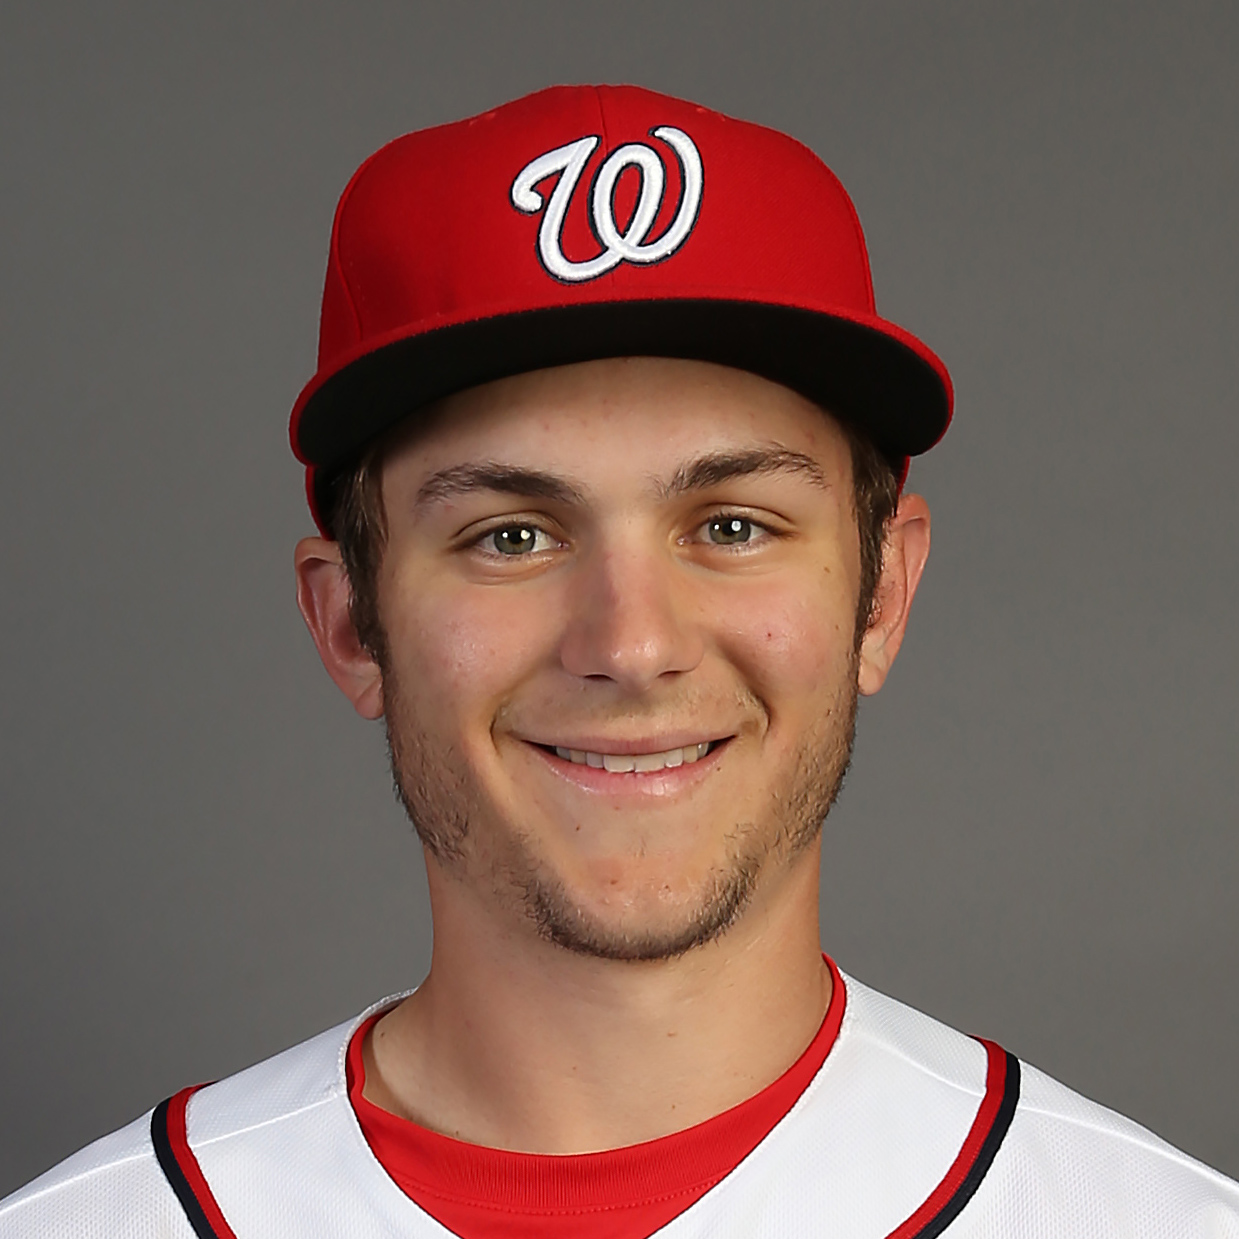 Trea Turner Headshot